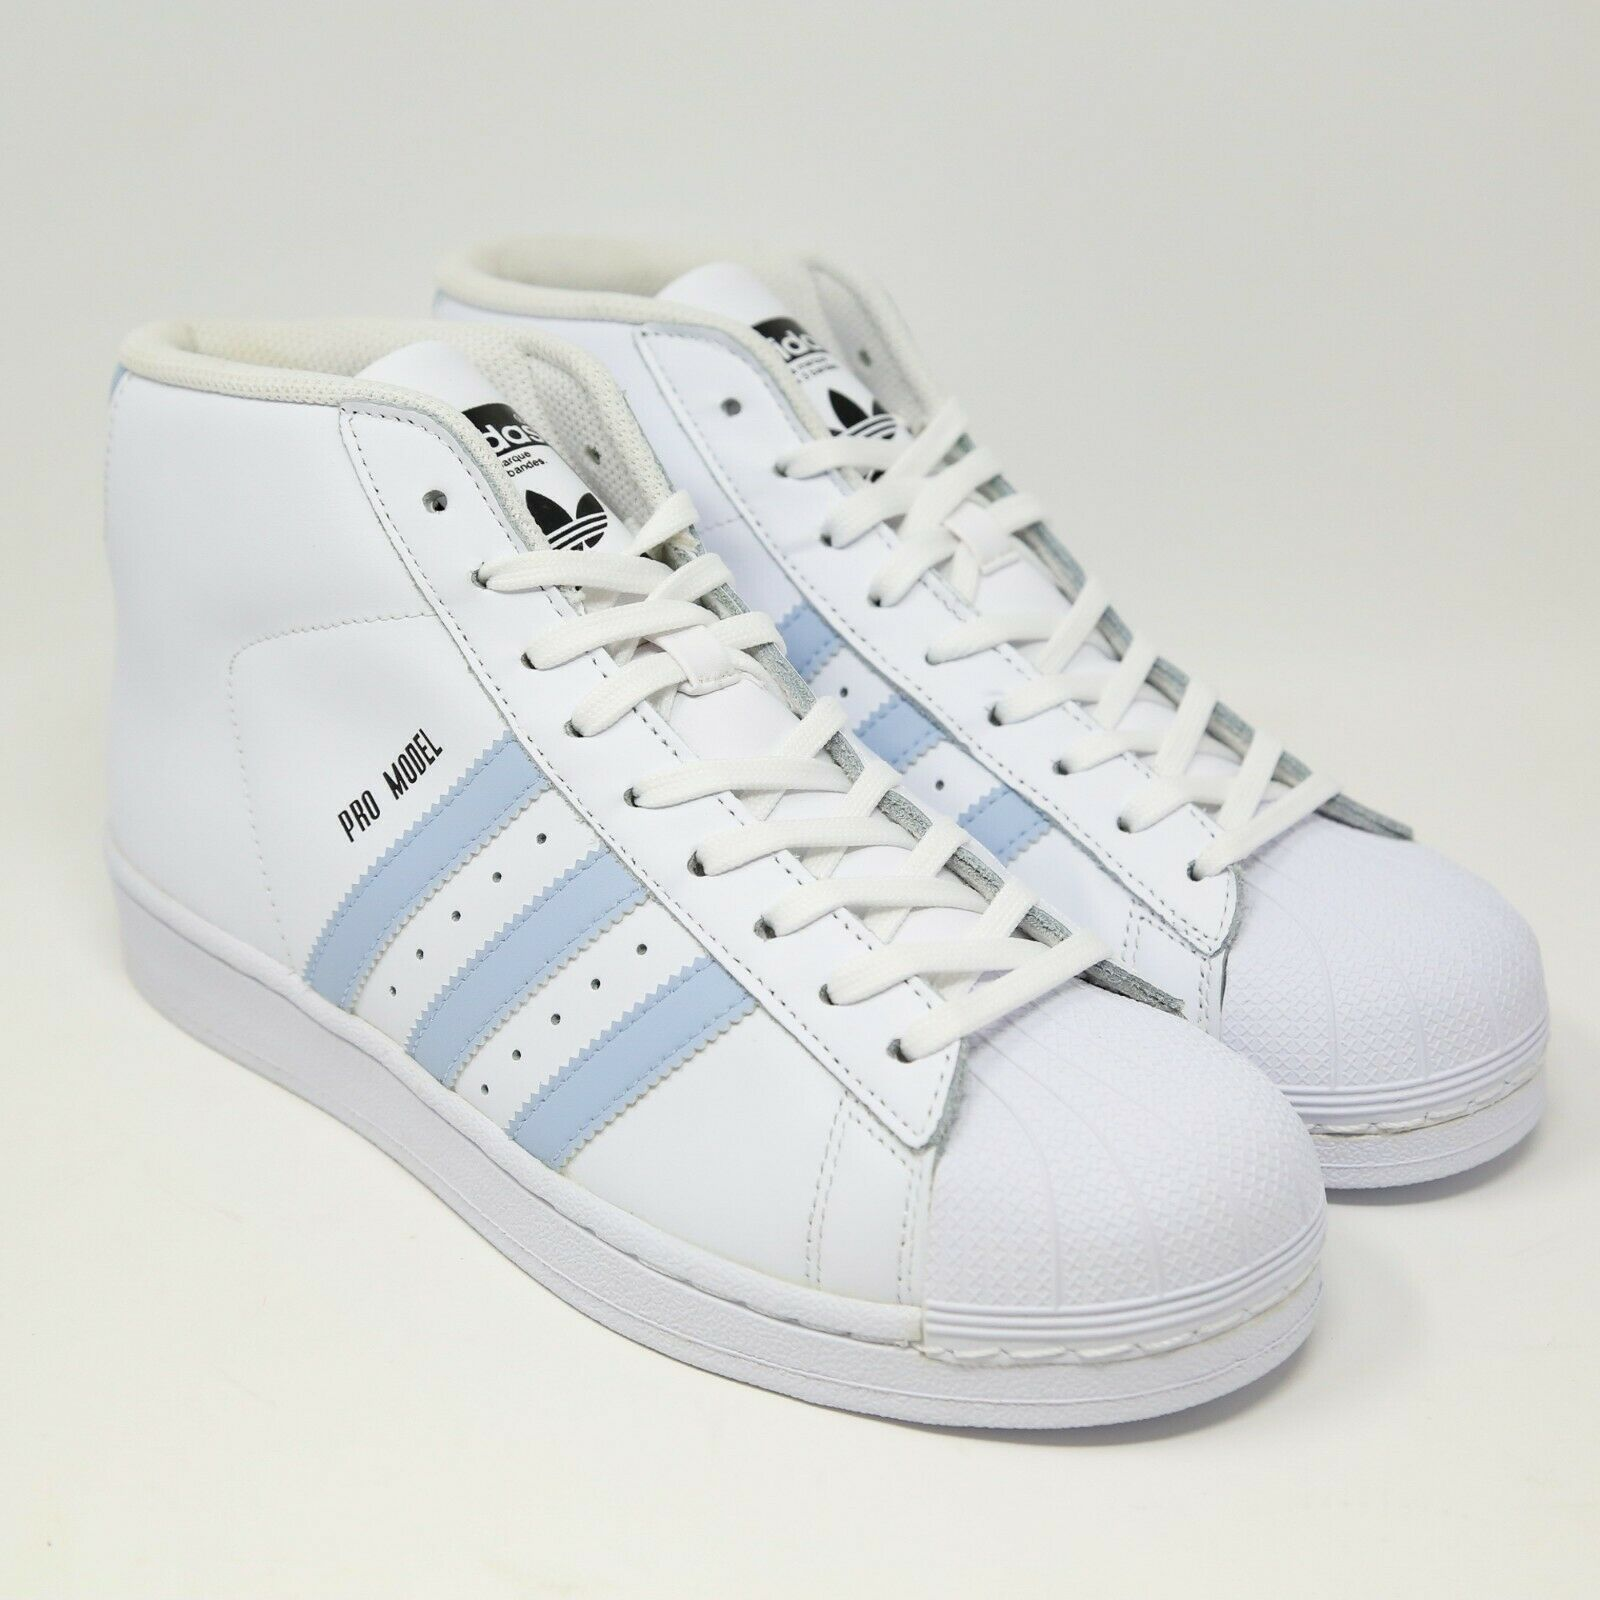 Adidas Superstar Shoes (2010s): 1 listing